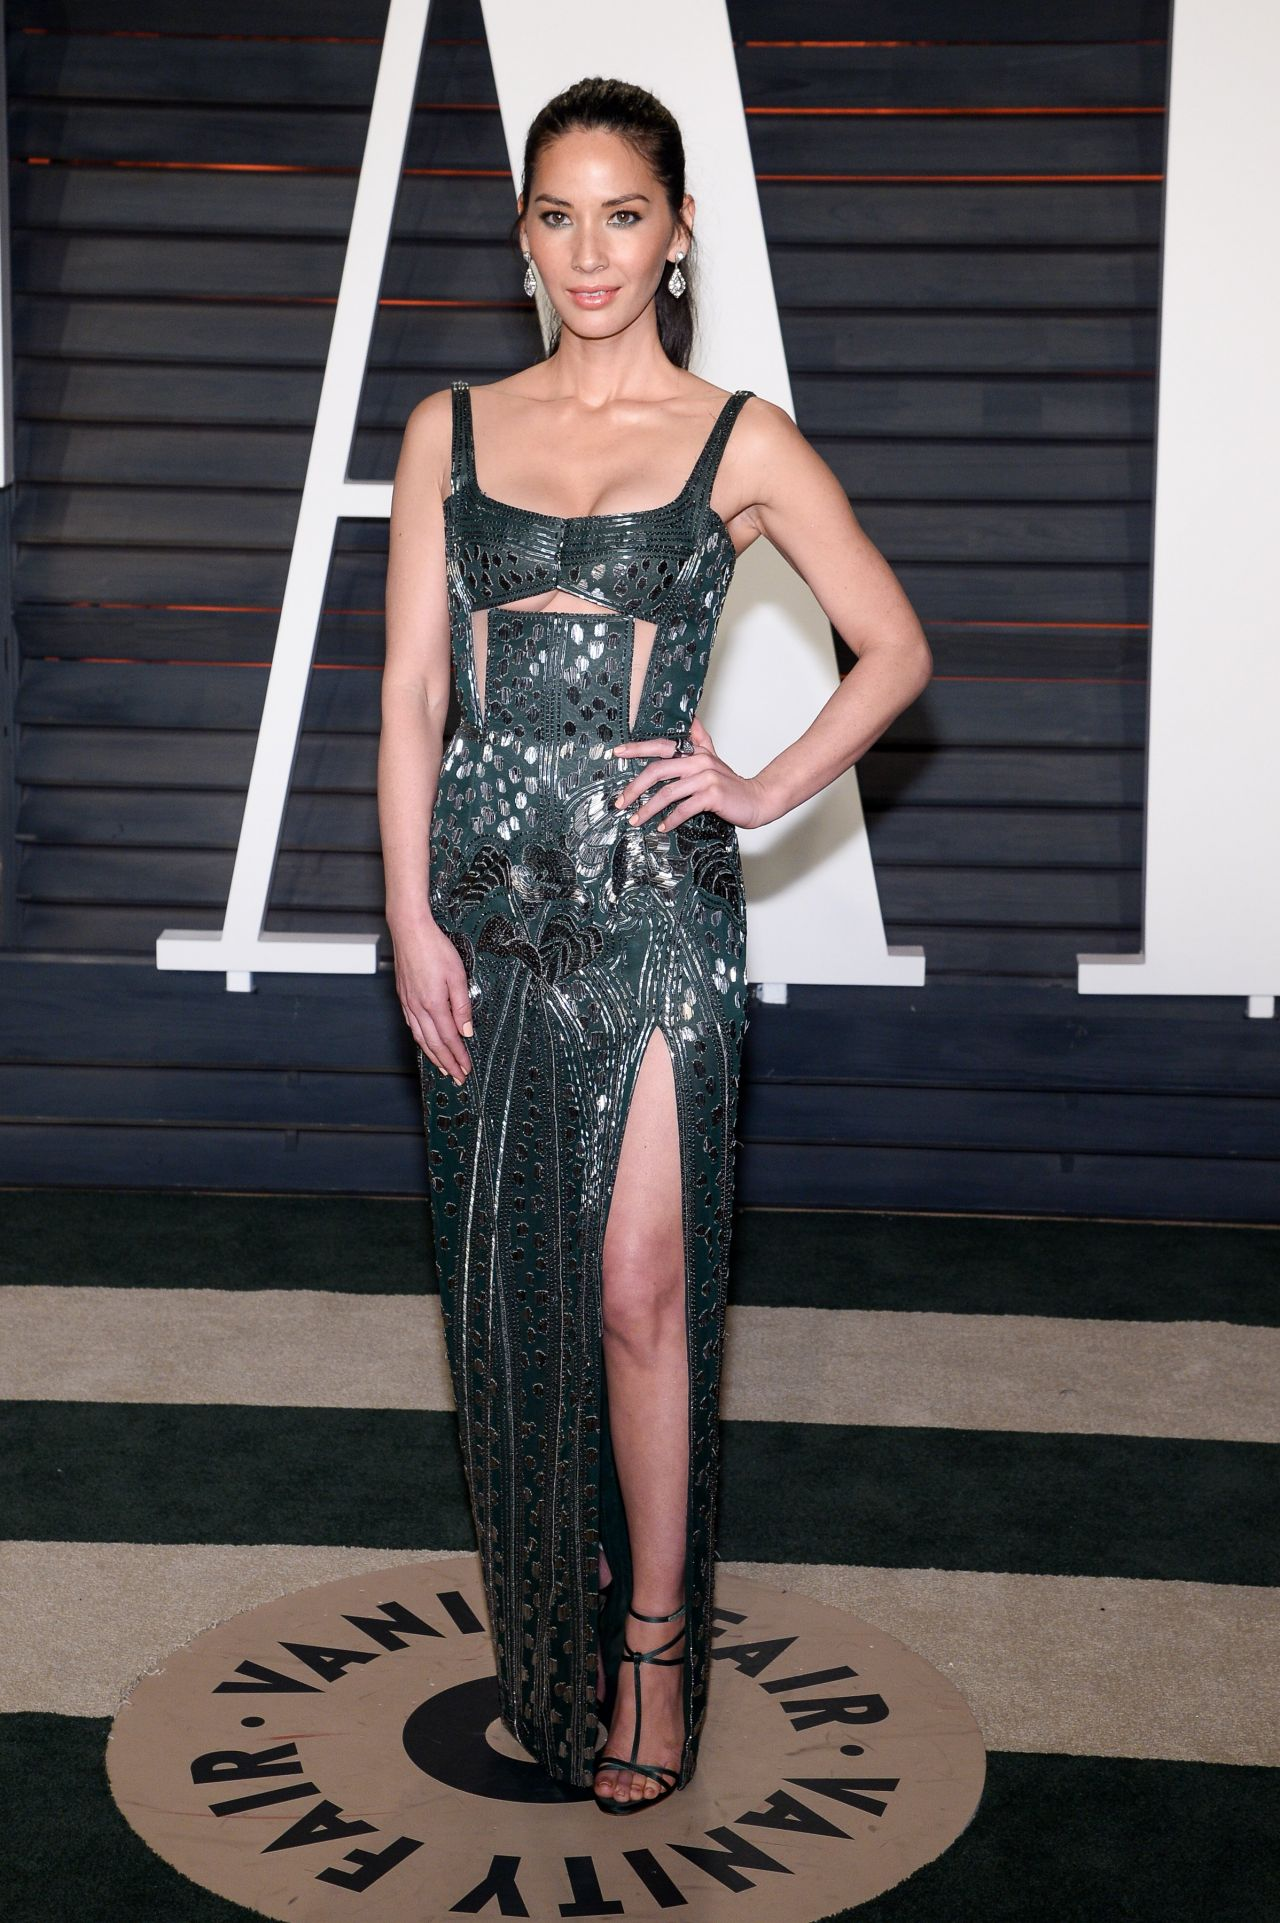 olivia-munn-2016-vanity-fair-oscar-party-in-beverly-hills-ca-6